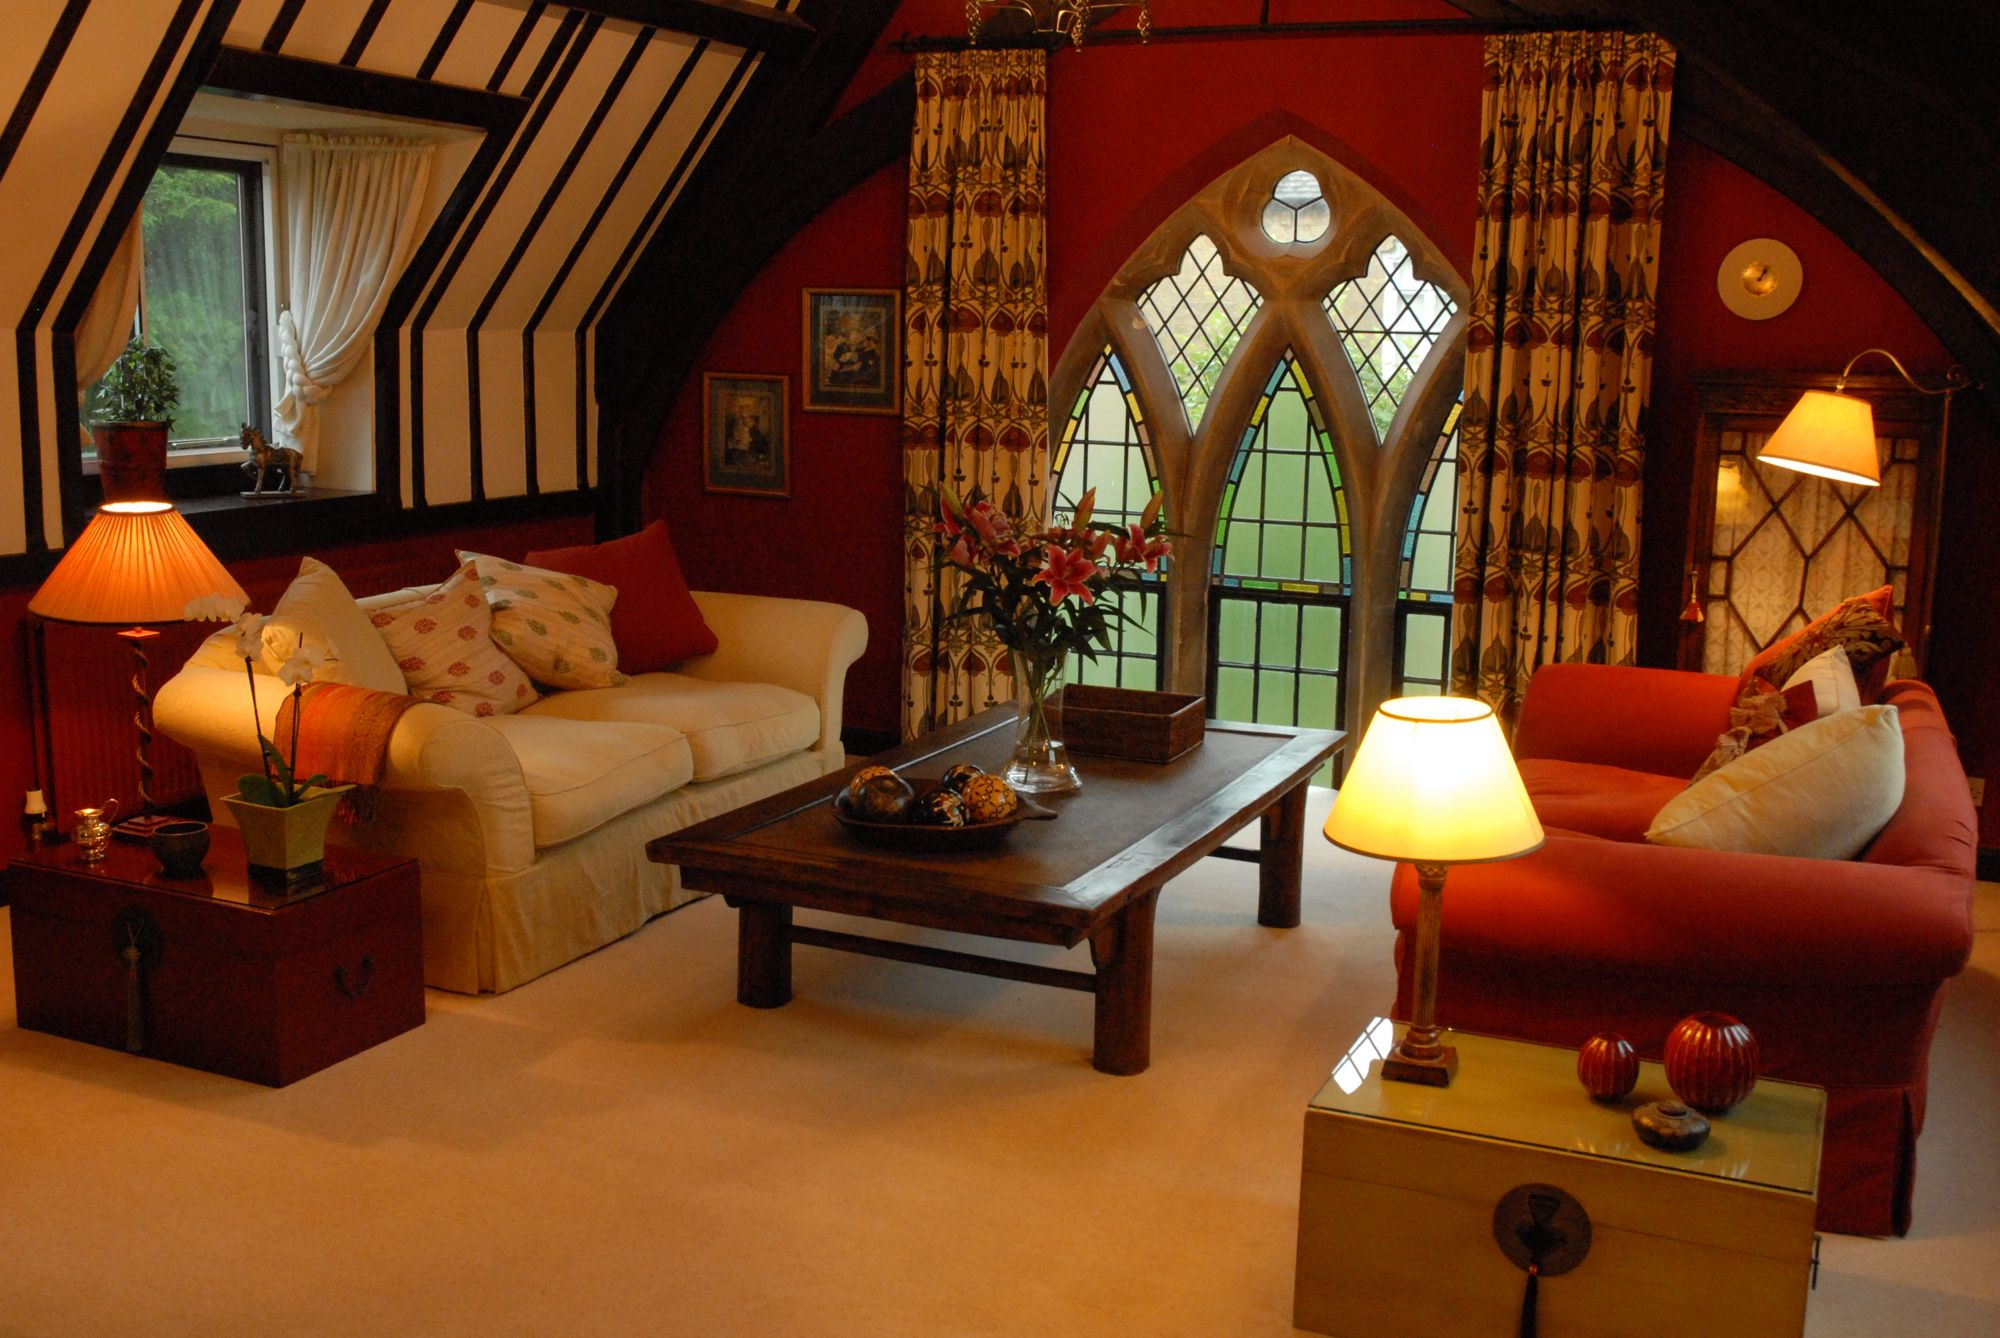 B&Bs in Moreton-in-Marsh holidays at Cool Places